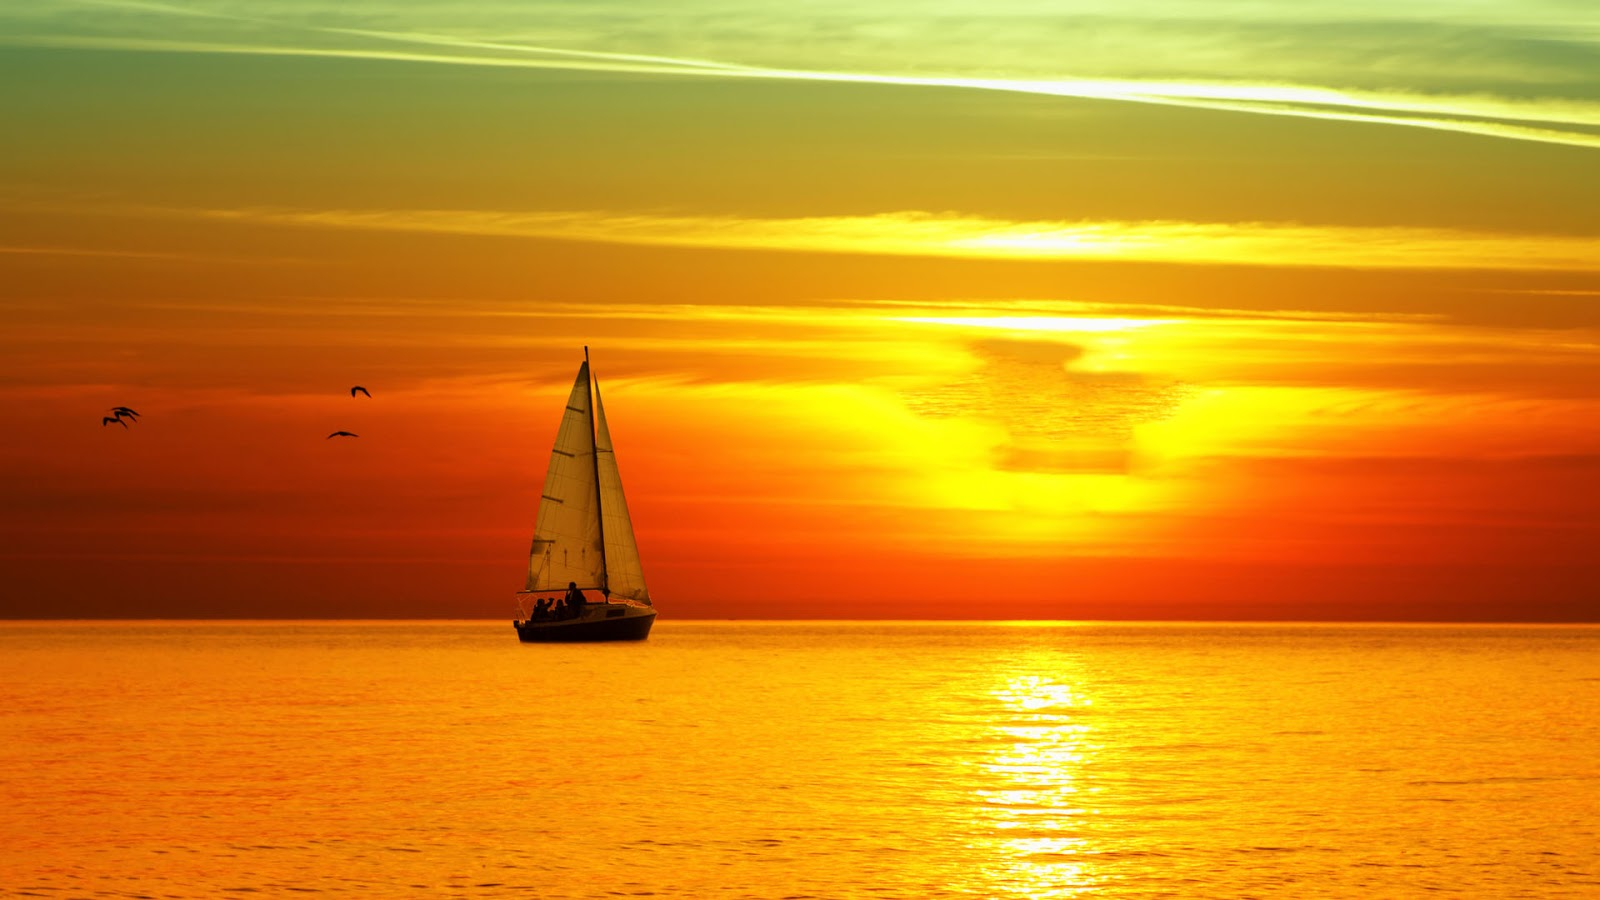 LOVE QUOTES: Sunset Hd Wallpaper 1080p